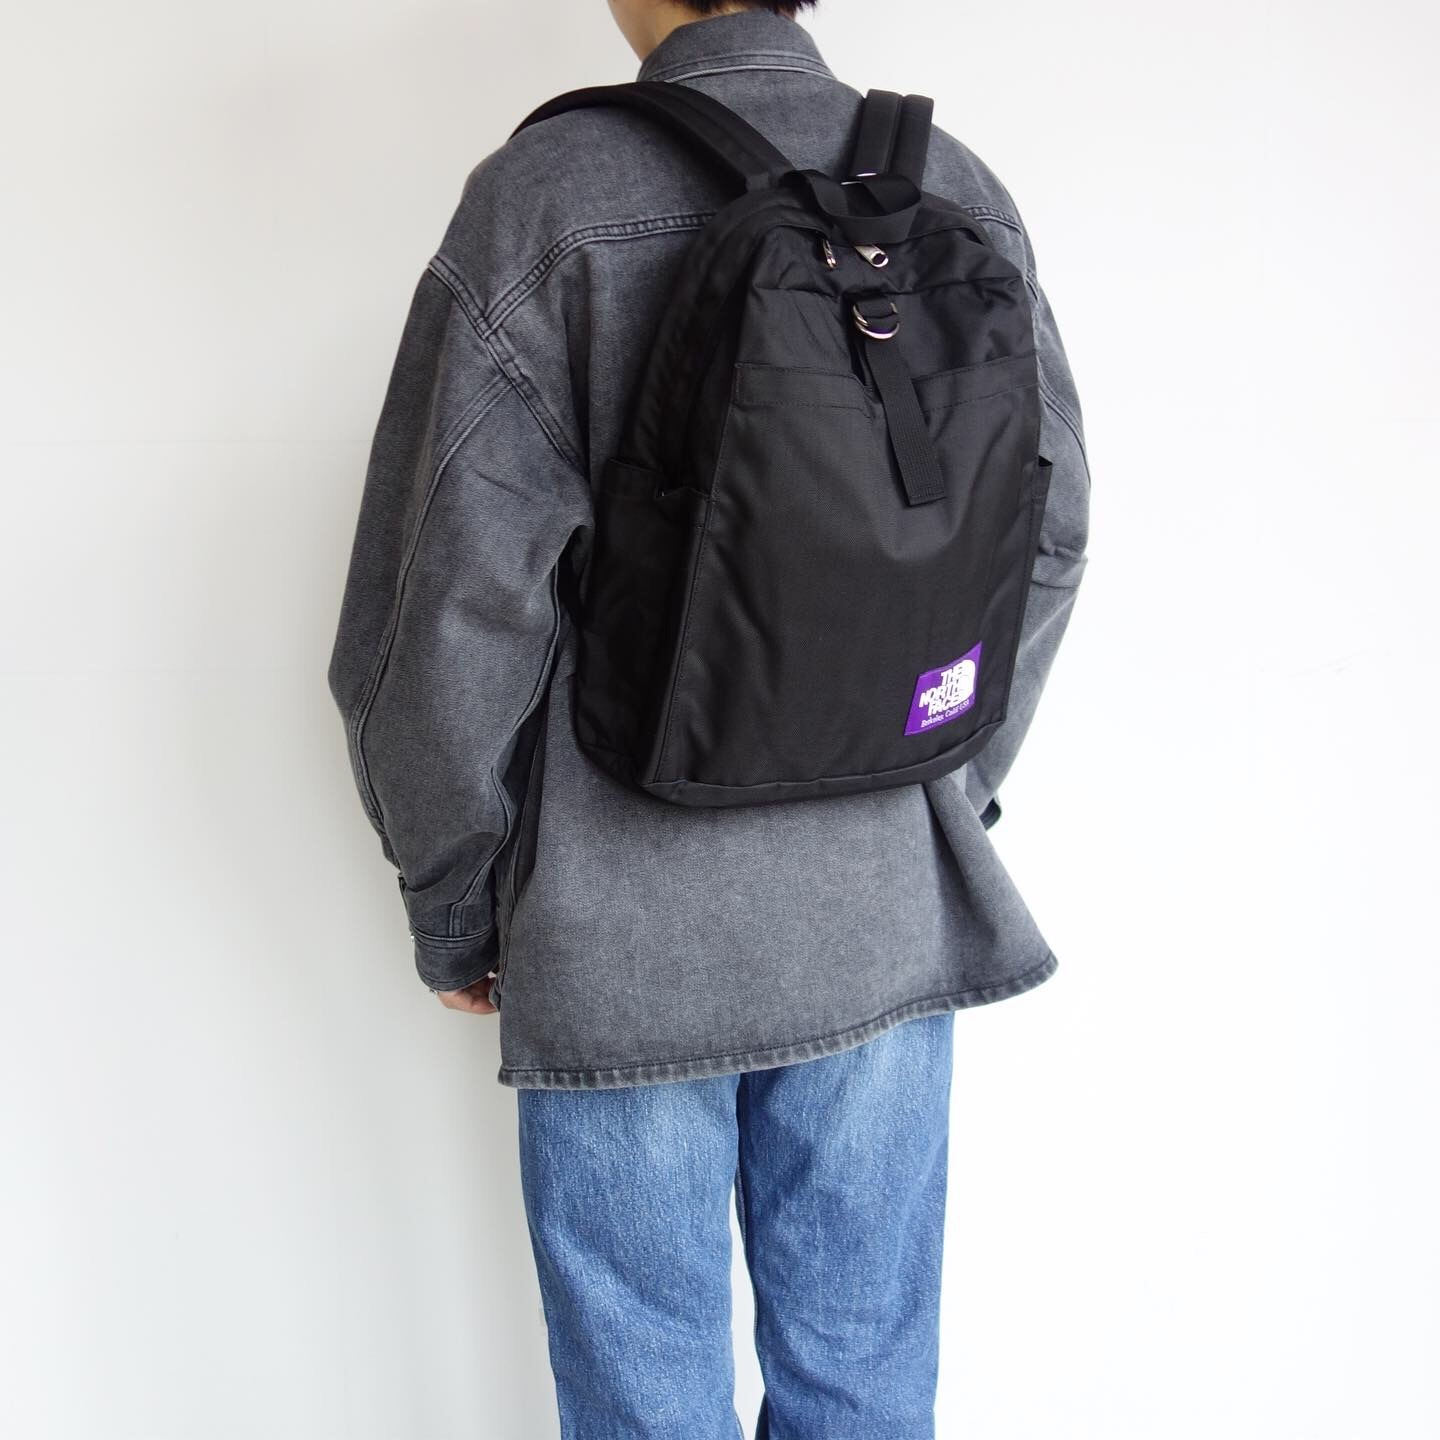 THE NORTH FACE PURPLE LABEL : Book Rac Pack M_a0234452_16105352.jpg